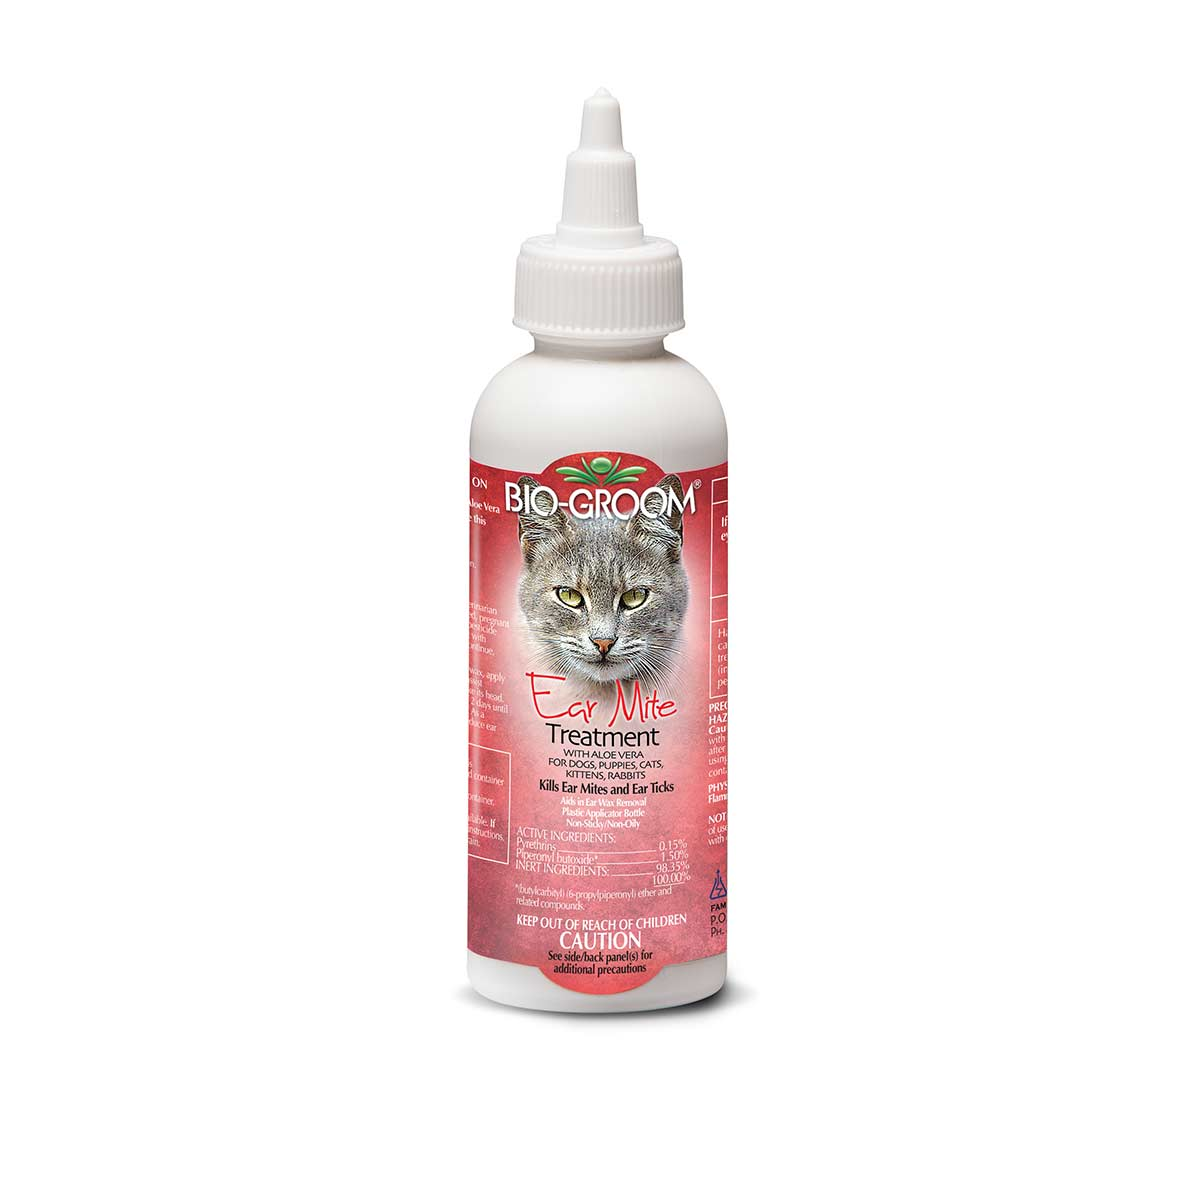 4 oz Bio-Groom Ear Mite Treatment for pets and dogs